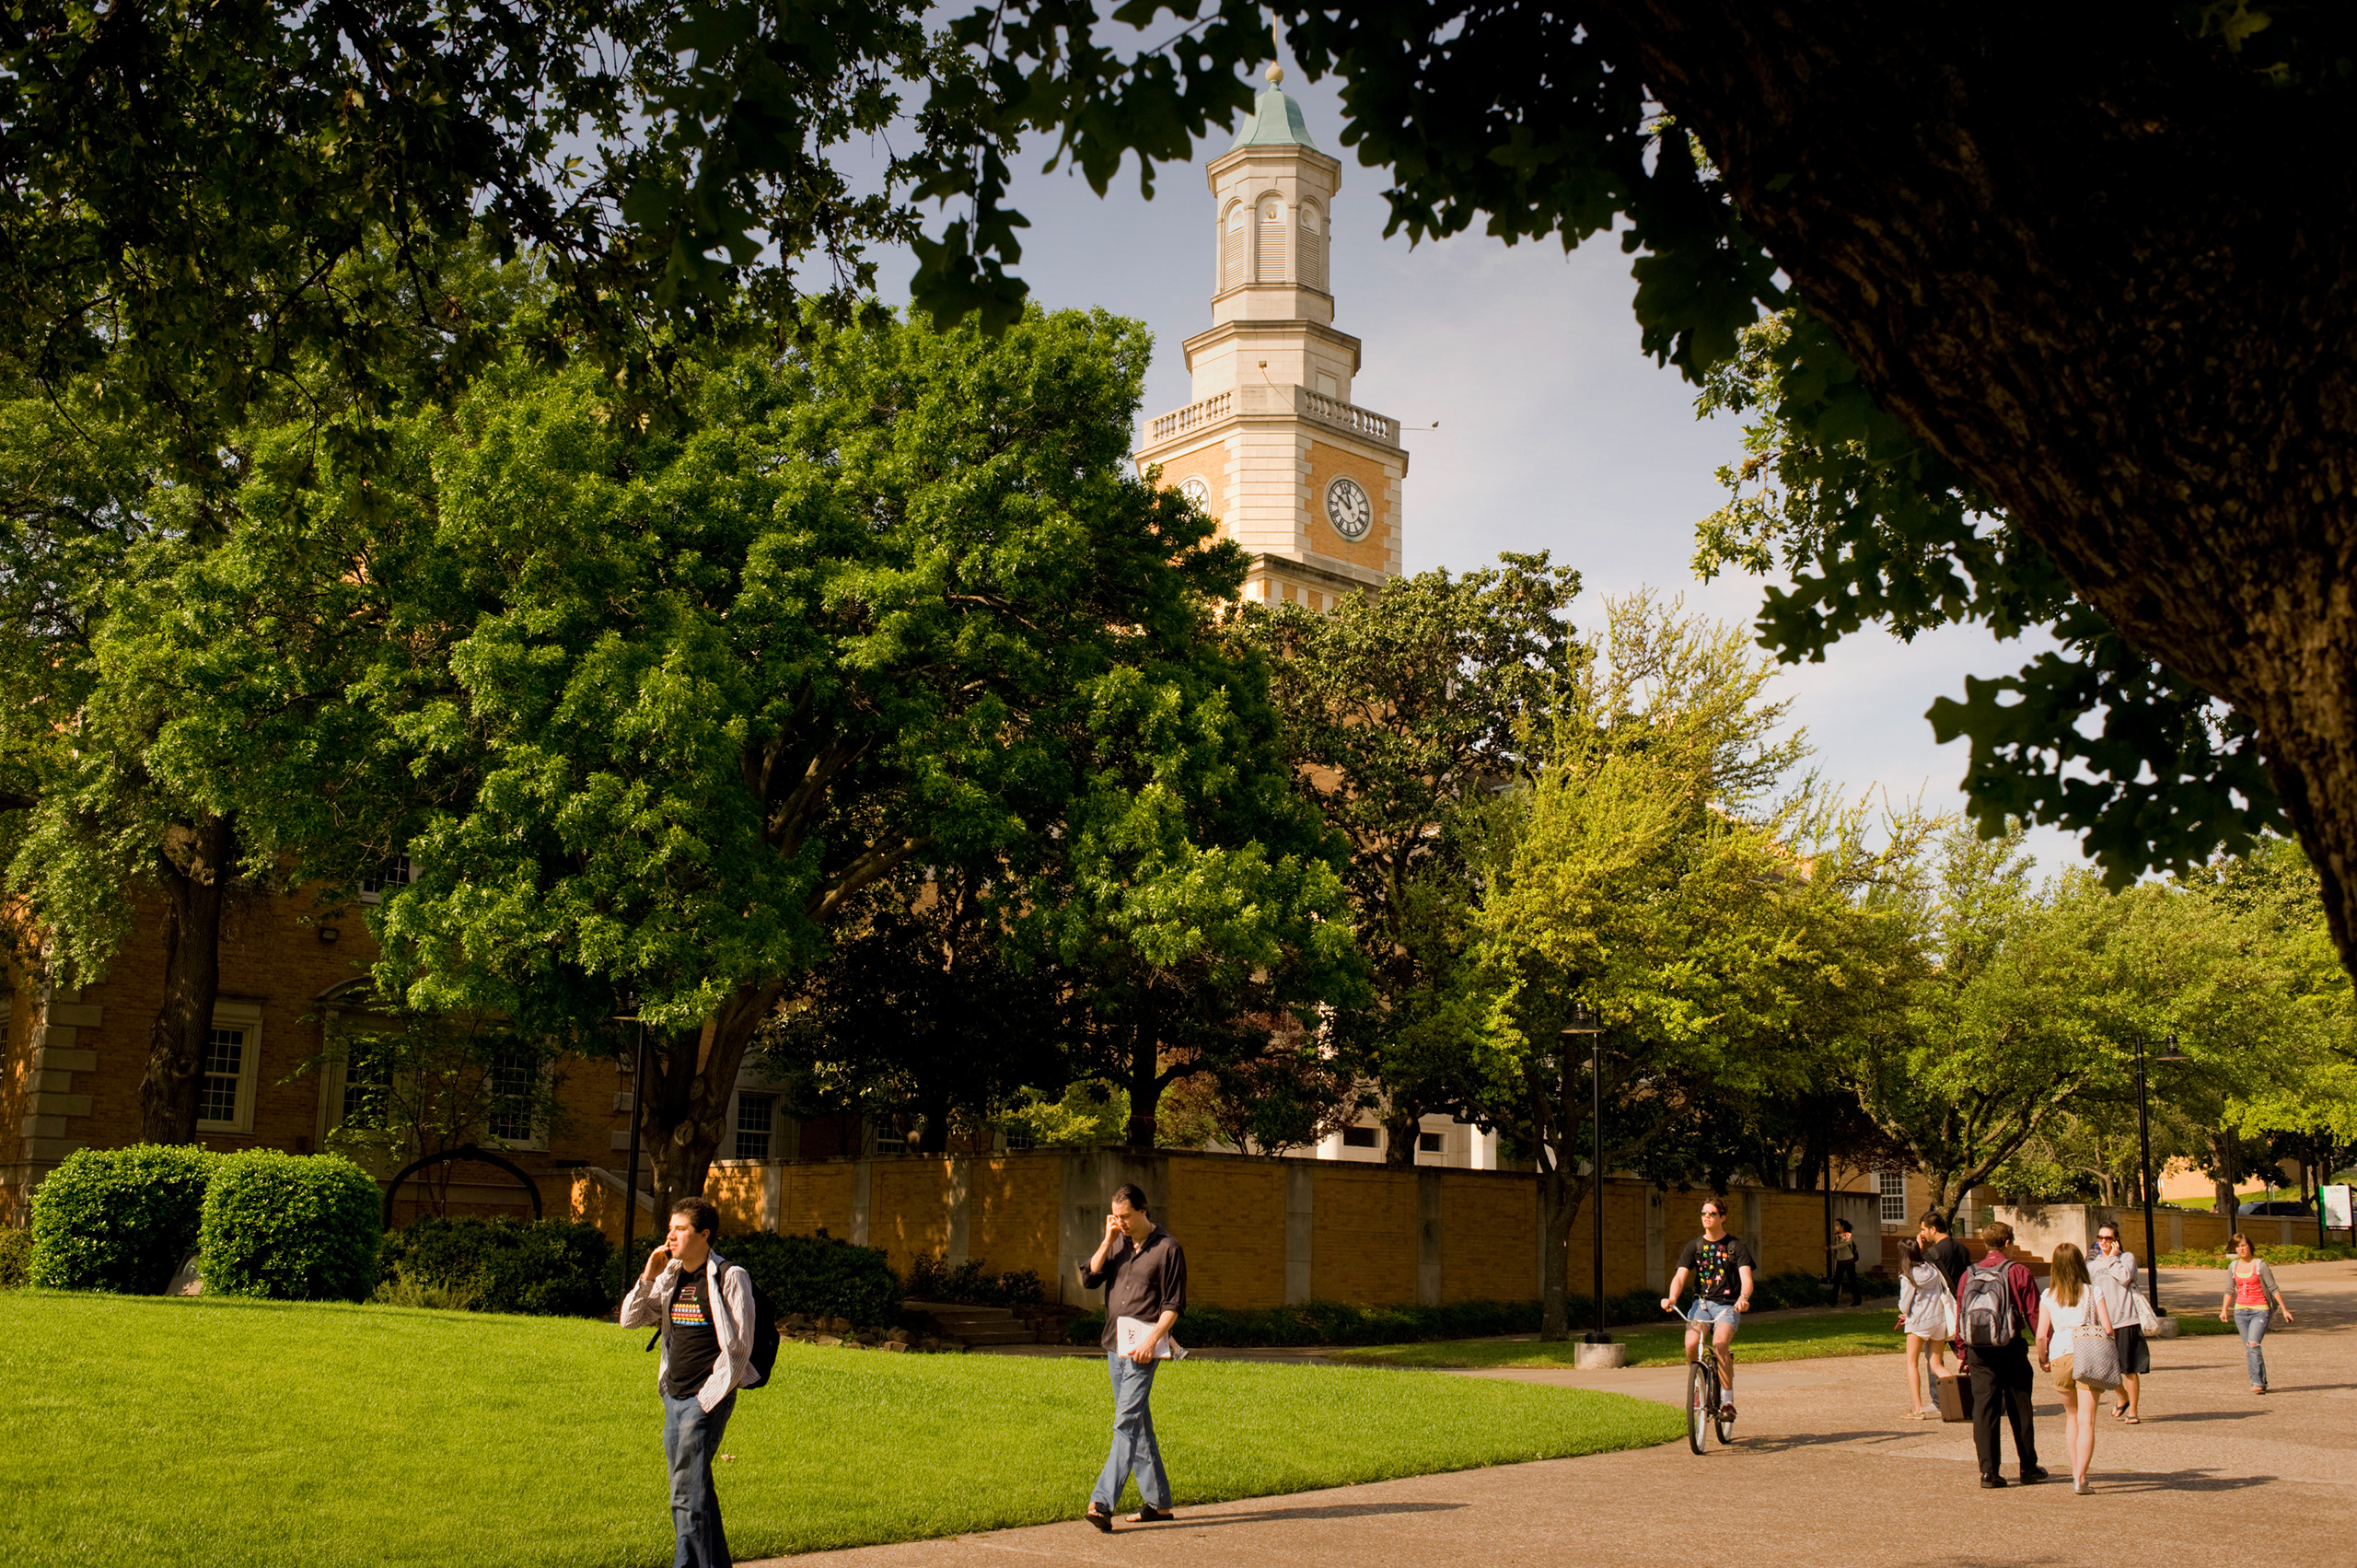 More than 2,000 trees – ranging from oak, mulberry, pine, and mesquite trees – decorate the University of North Texas main campus.